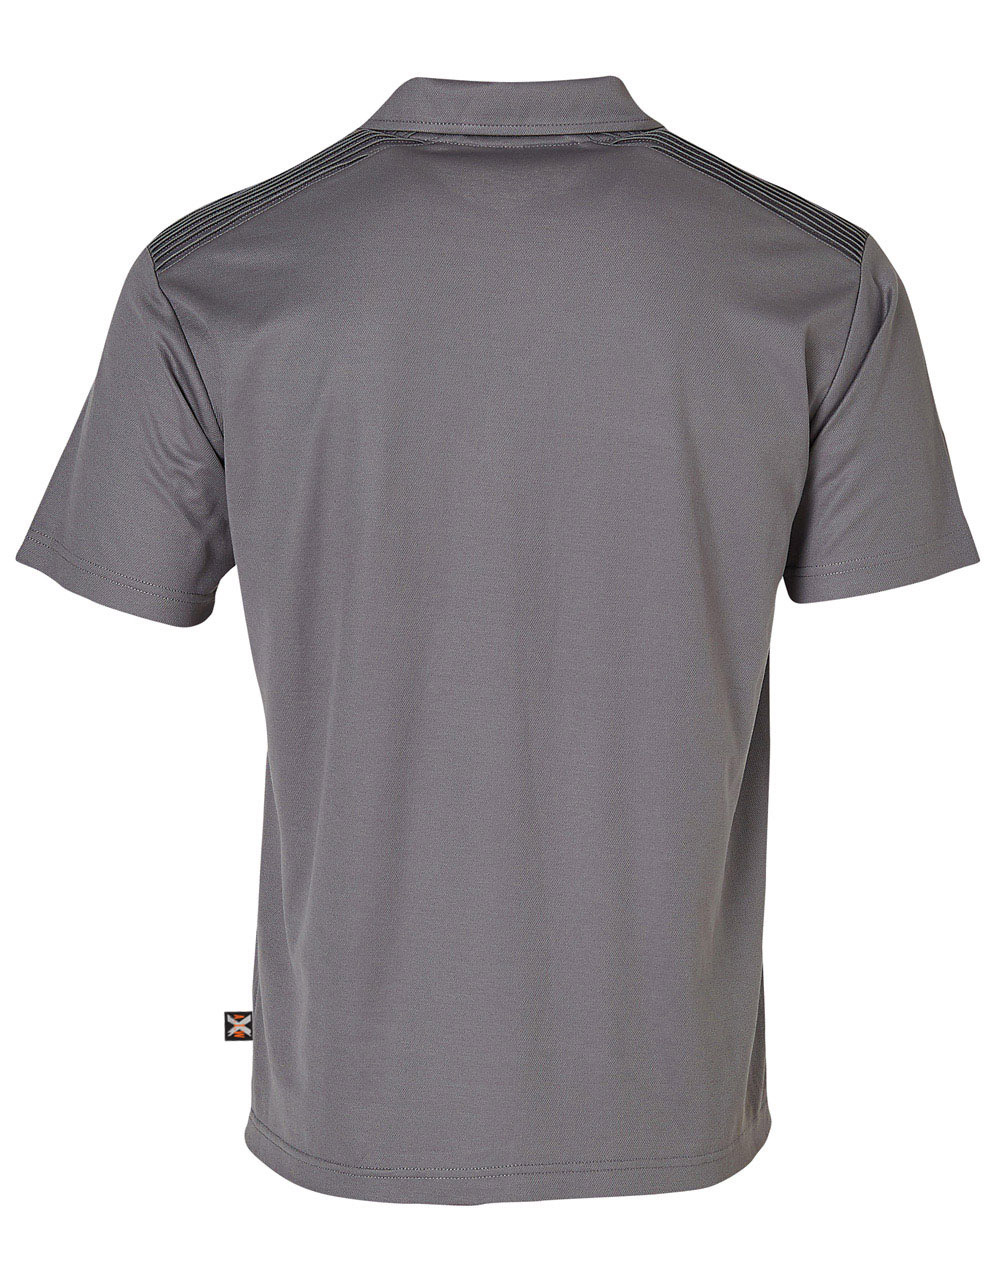 https://s3-ap-southeast-1.amazonaws.com/ws-imgs/WORKWEAR/PS209_SteelGrey_Back.jpg